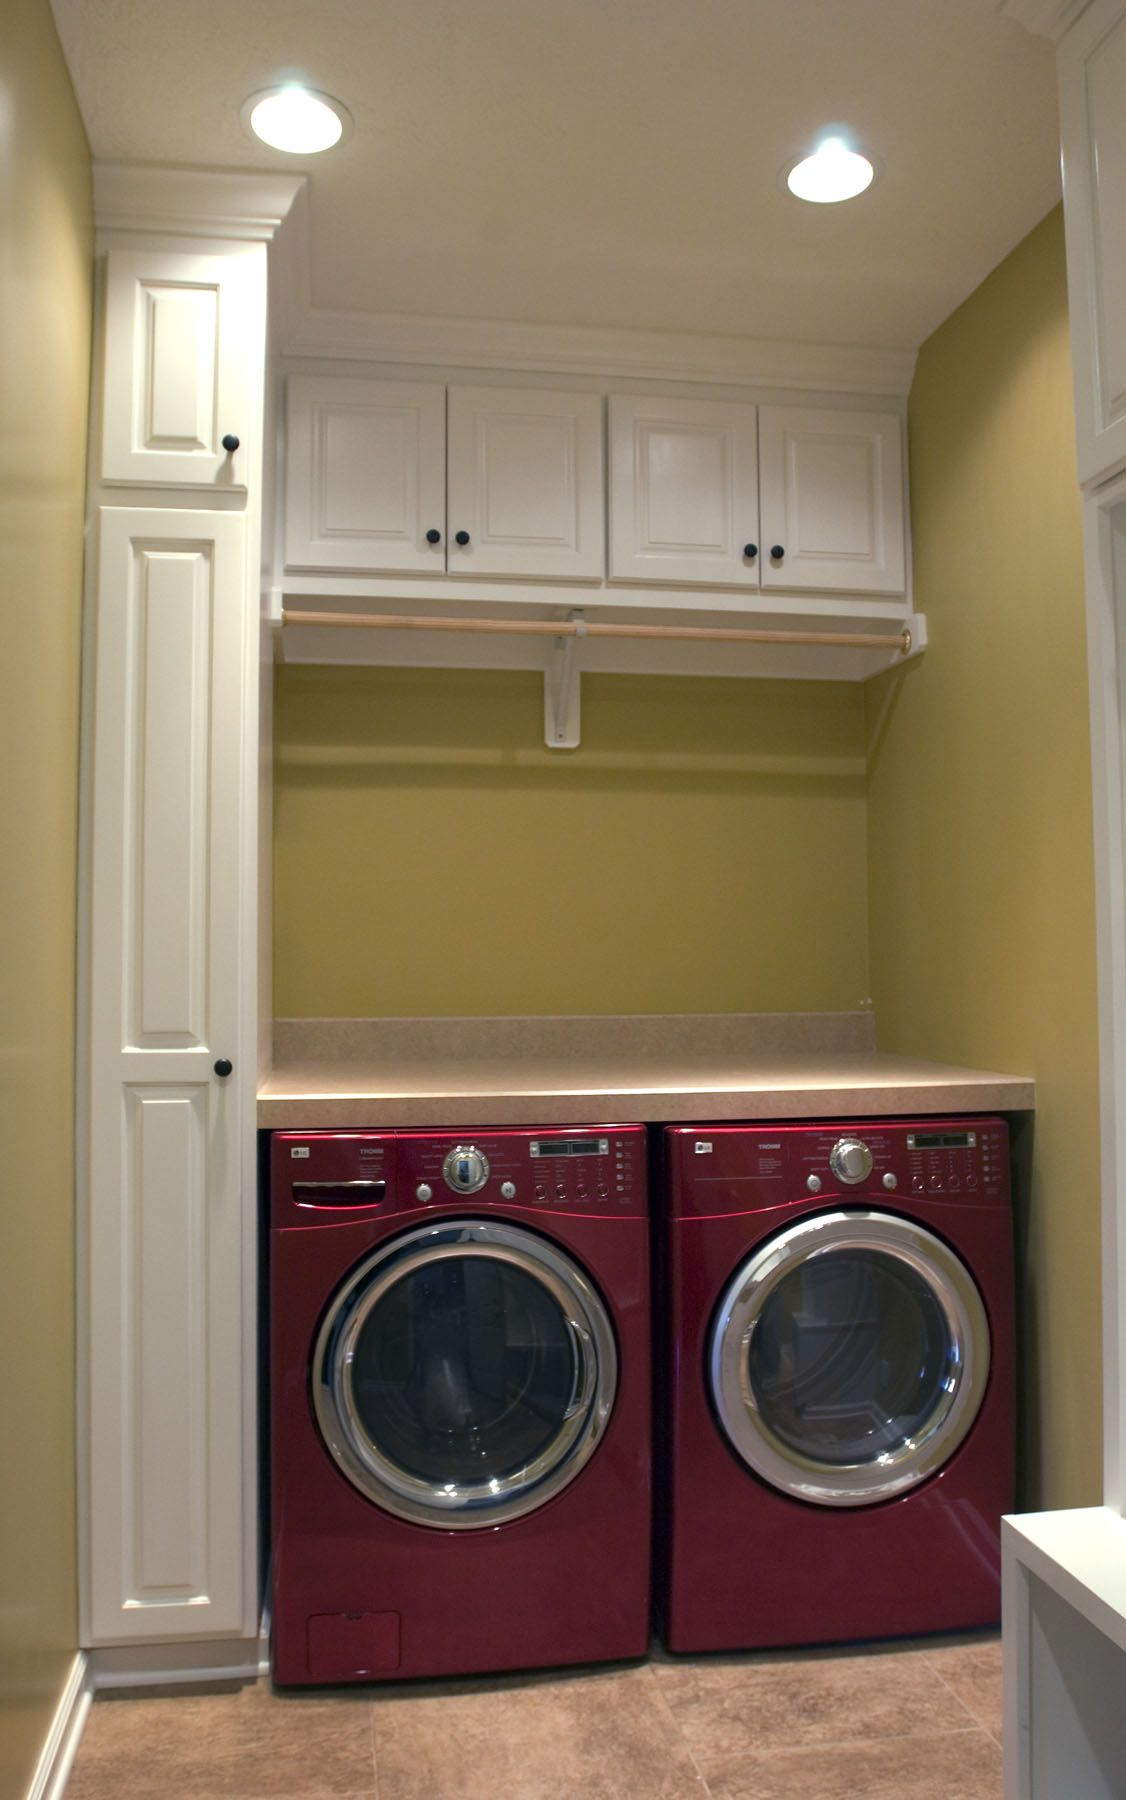 Trendy small laundry room ideas 1126 x 1800 171 kb for Small laundry design